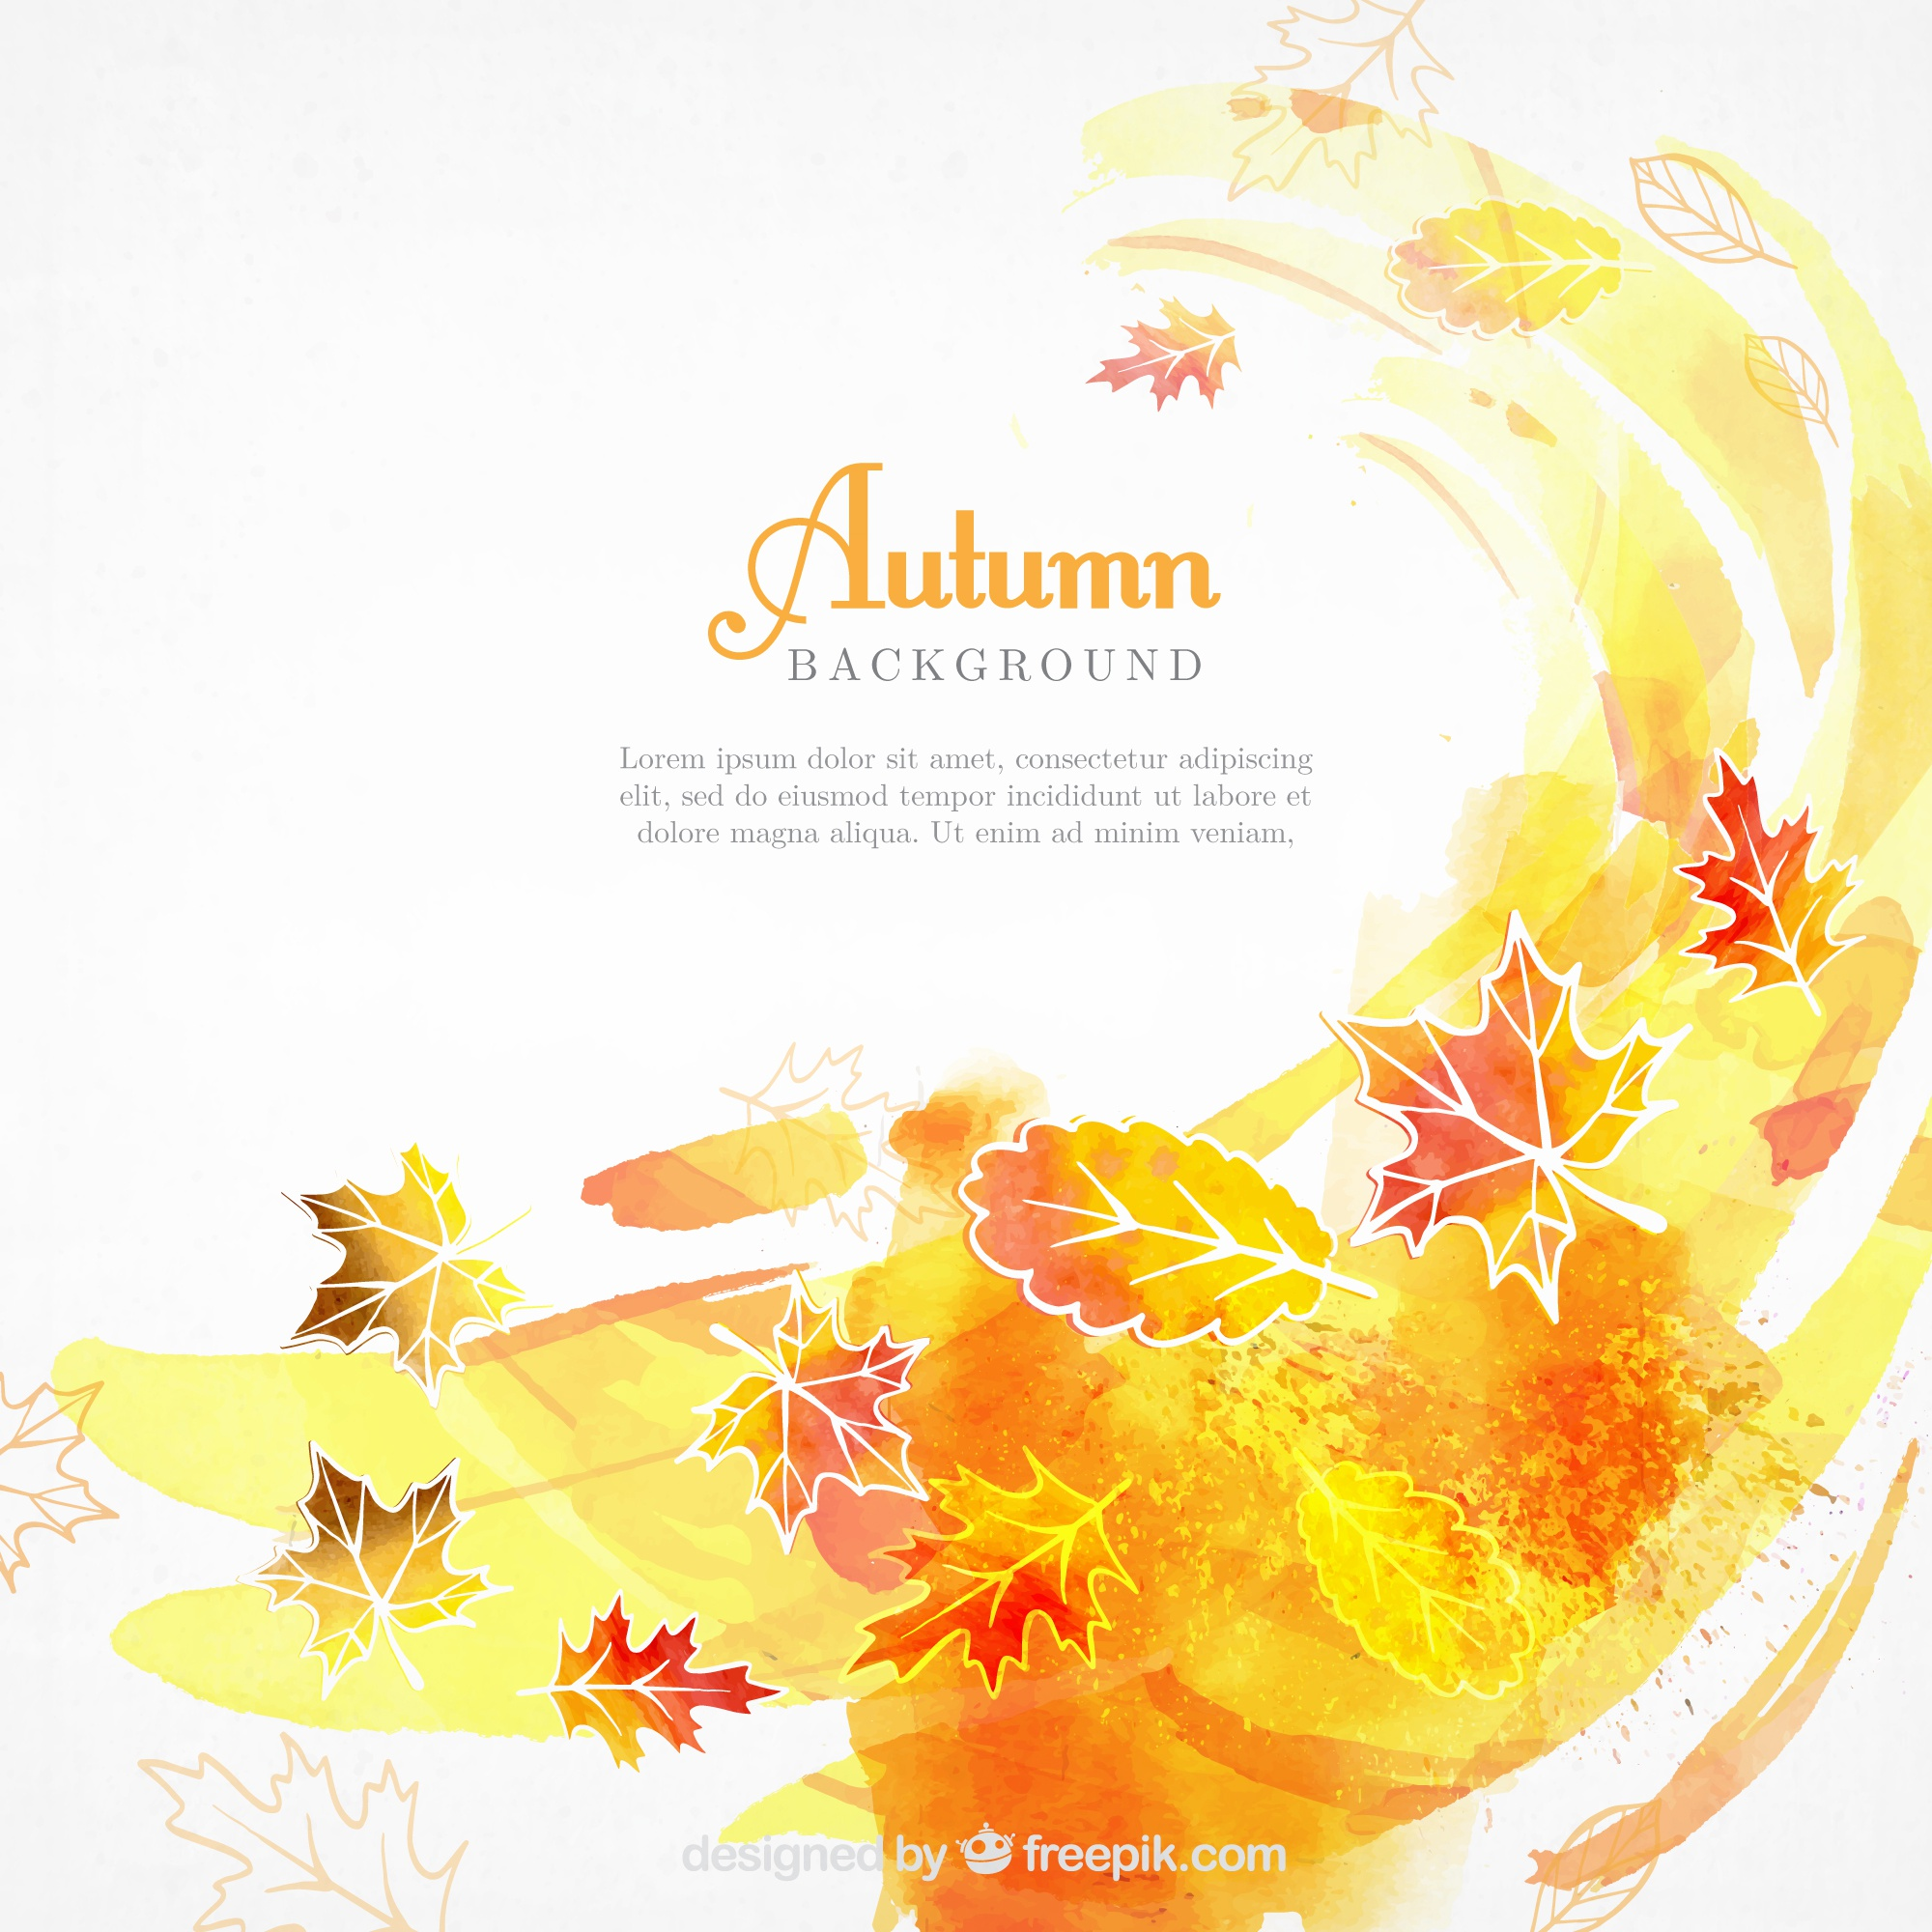 Watercolor autumnal background with abstract style